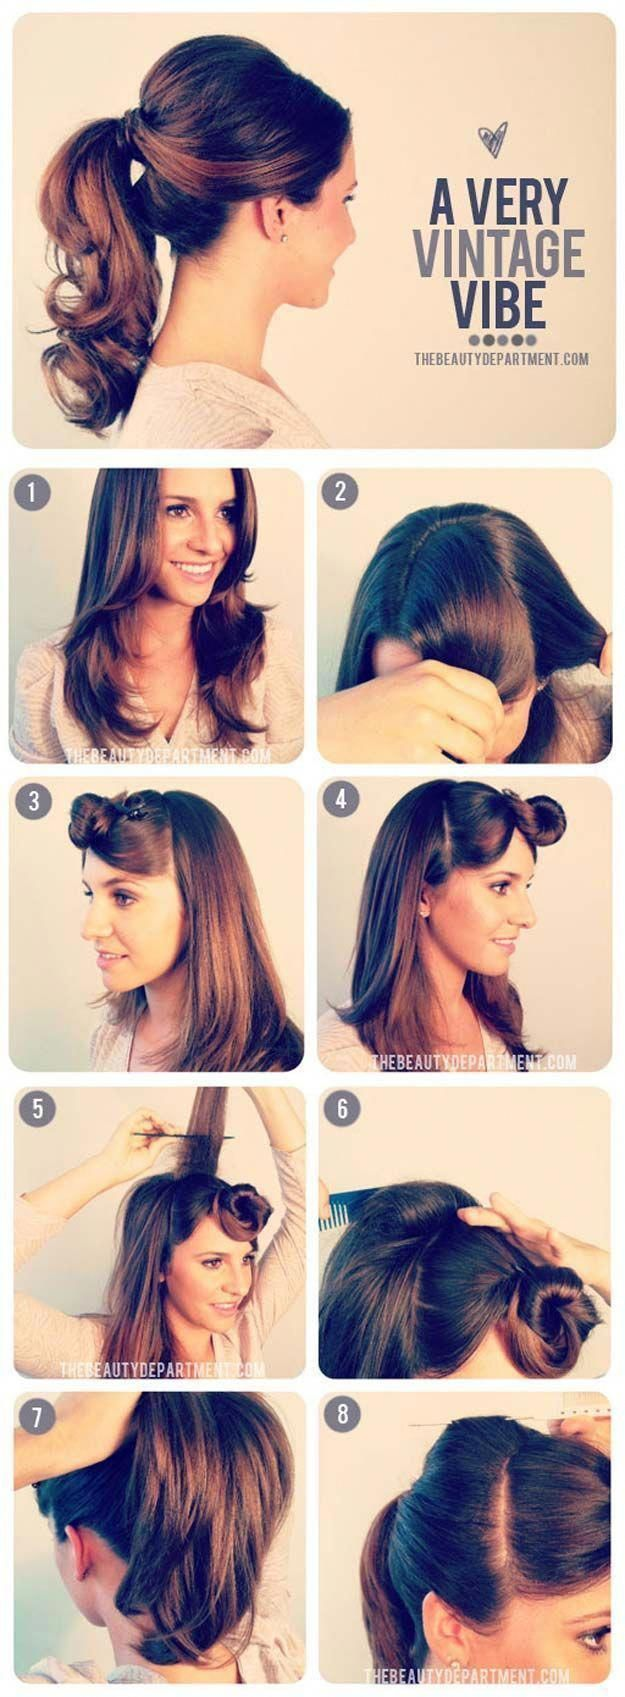 Astonishing Ideas: Messy Hairstyles Waves women hairstyles undercut pixie hair.B